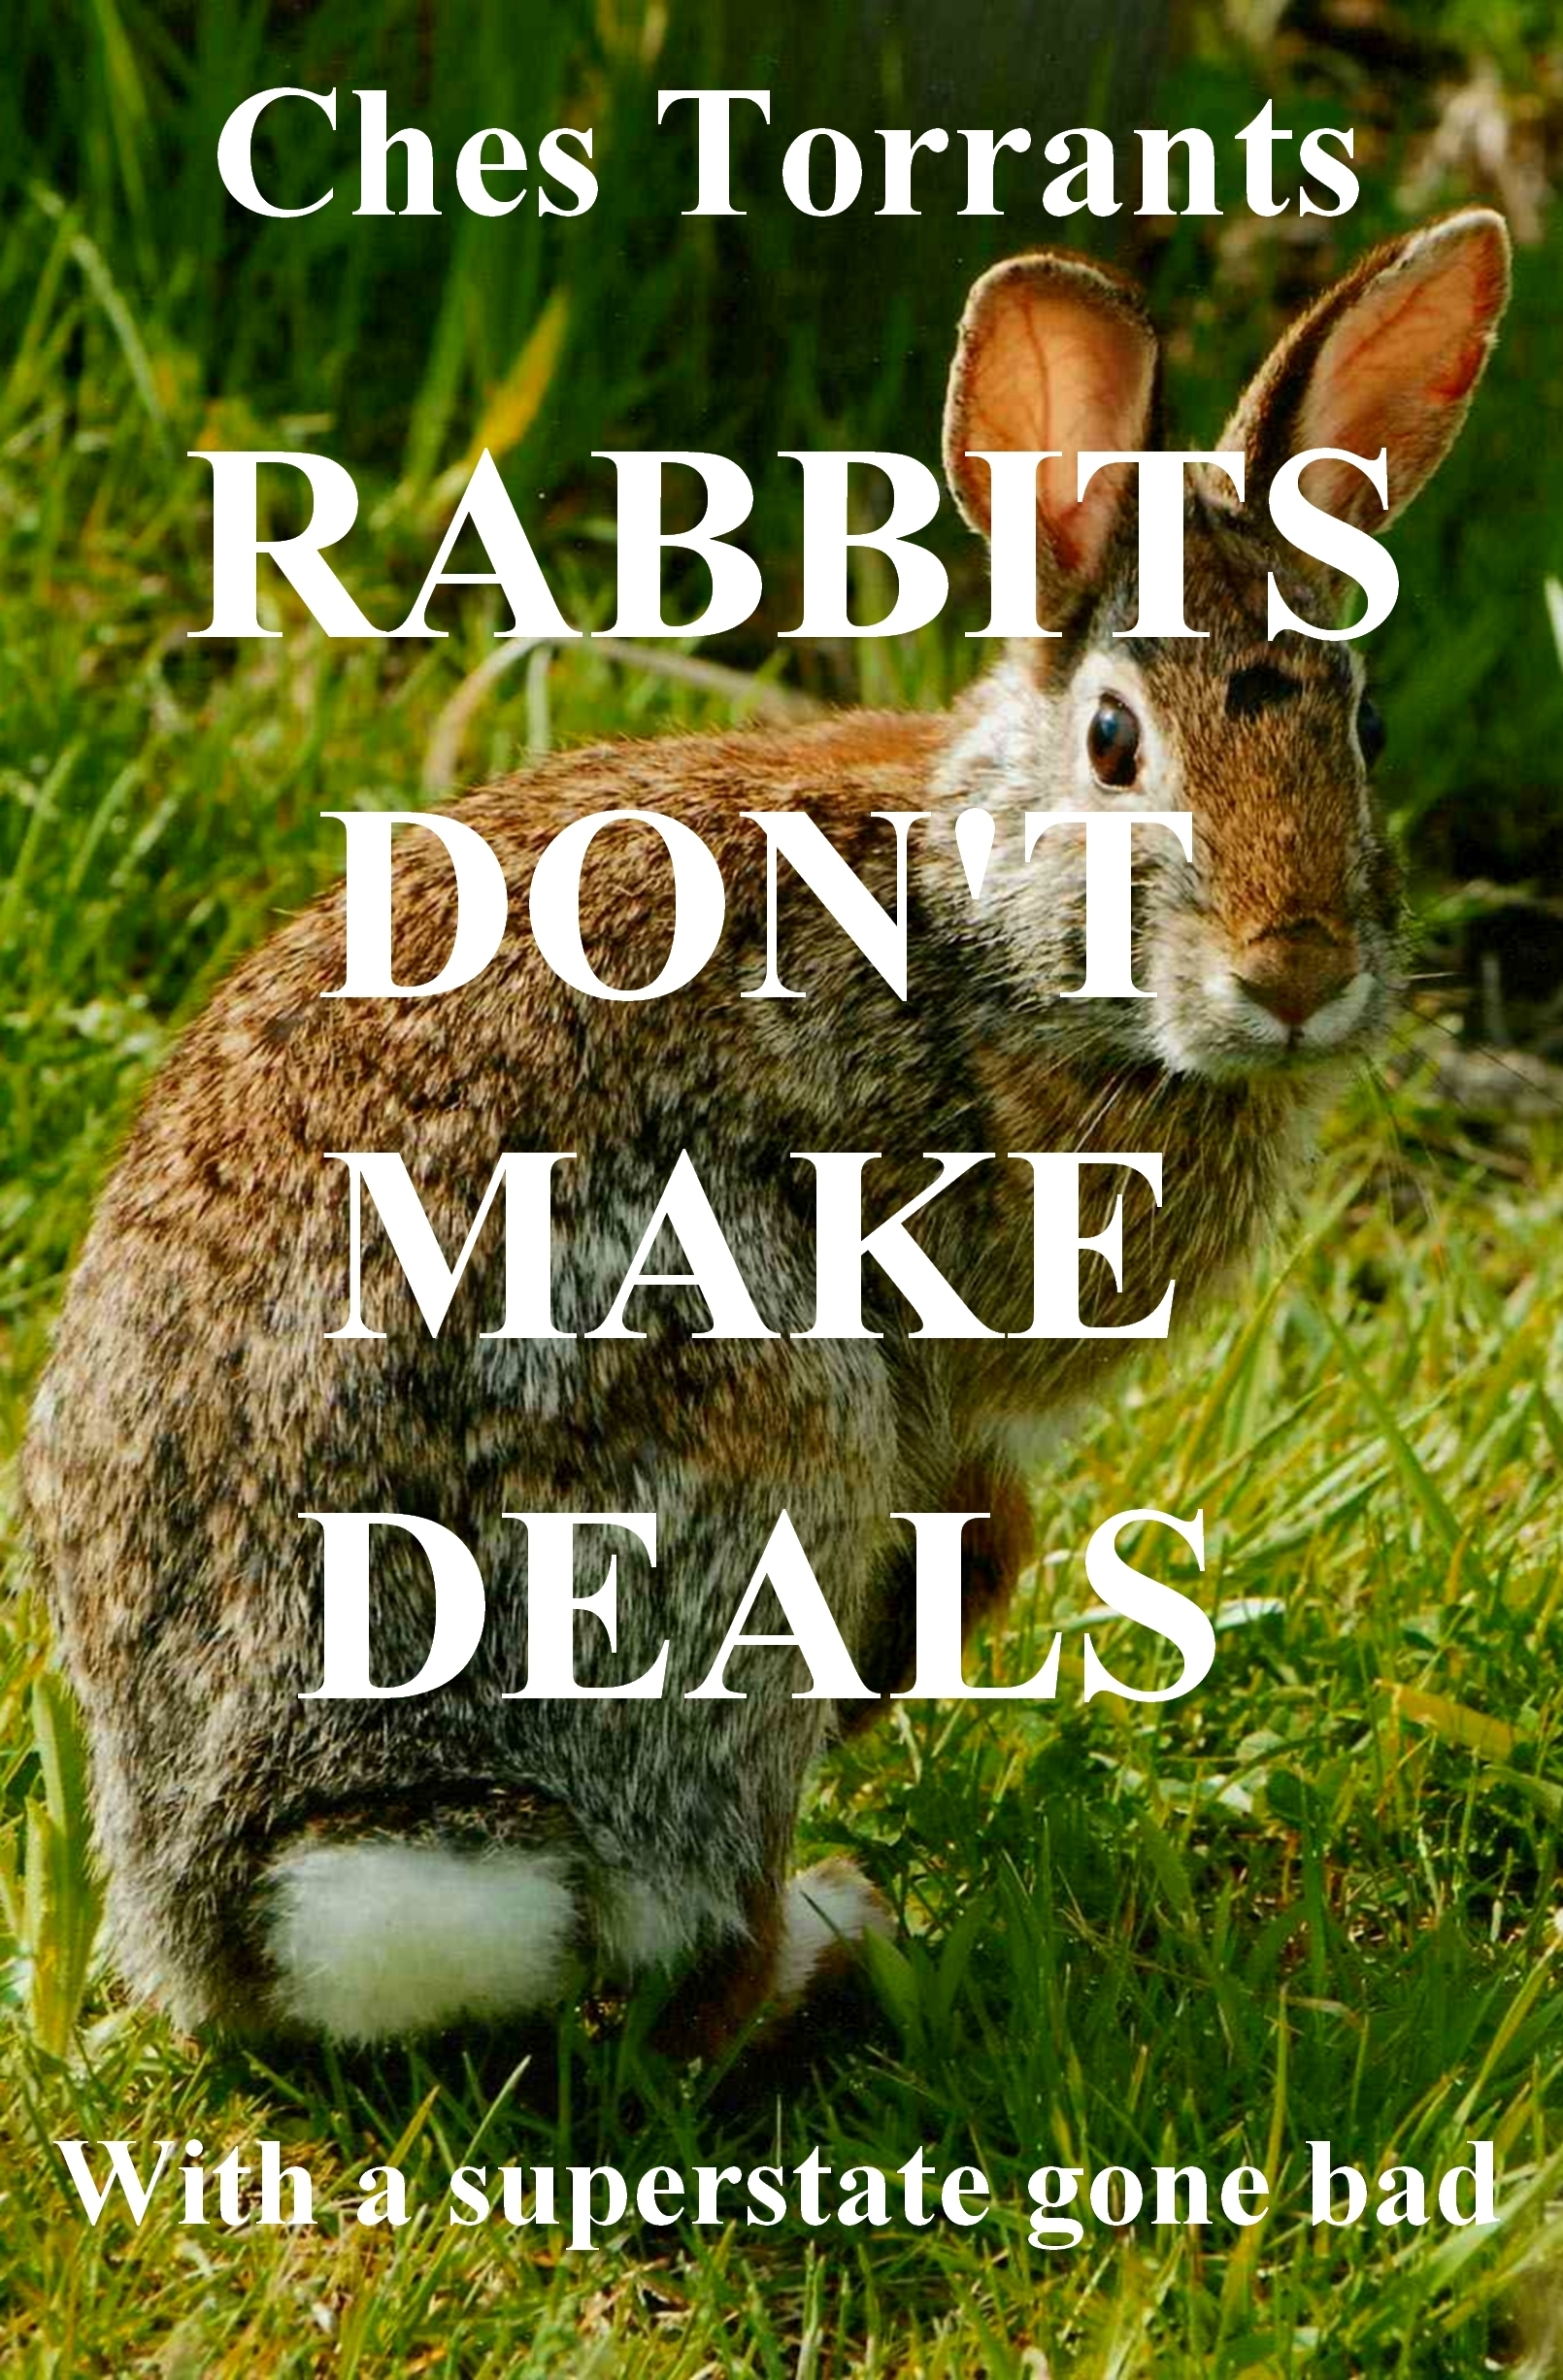 Rabbits Dont Make Deals Ches Torrants